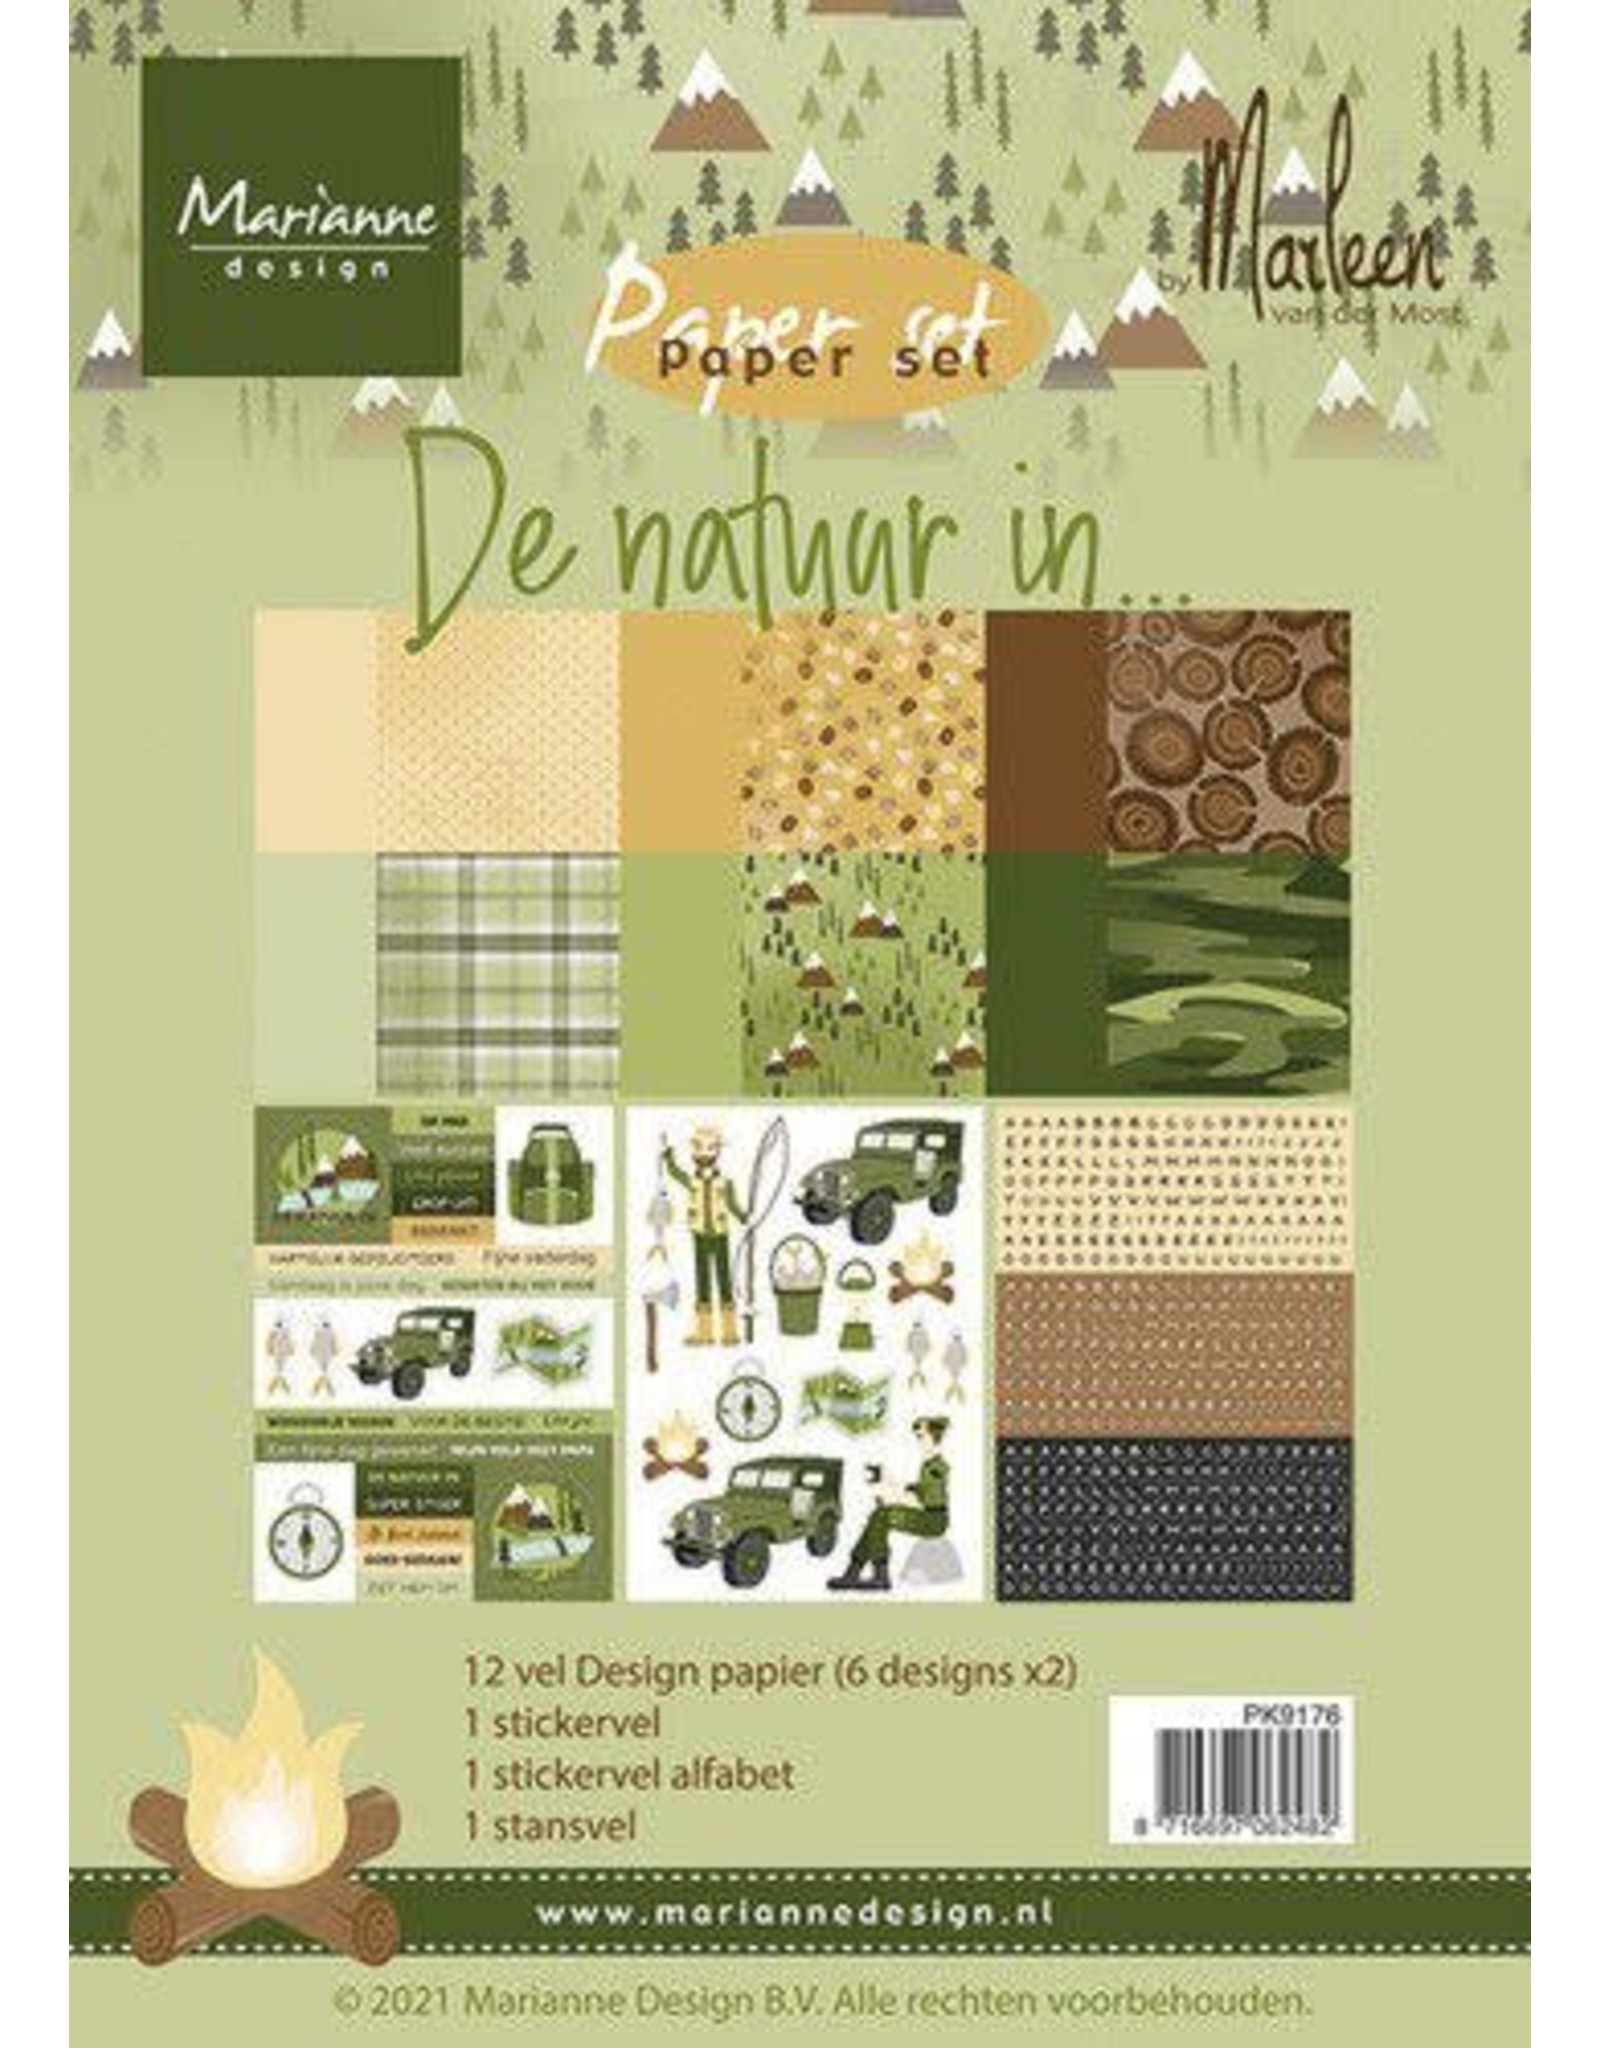 Marianne Design Marianne D Paper pad De natuur in By Marleen PK9176 A5